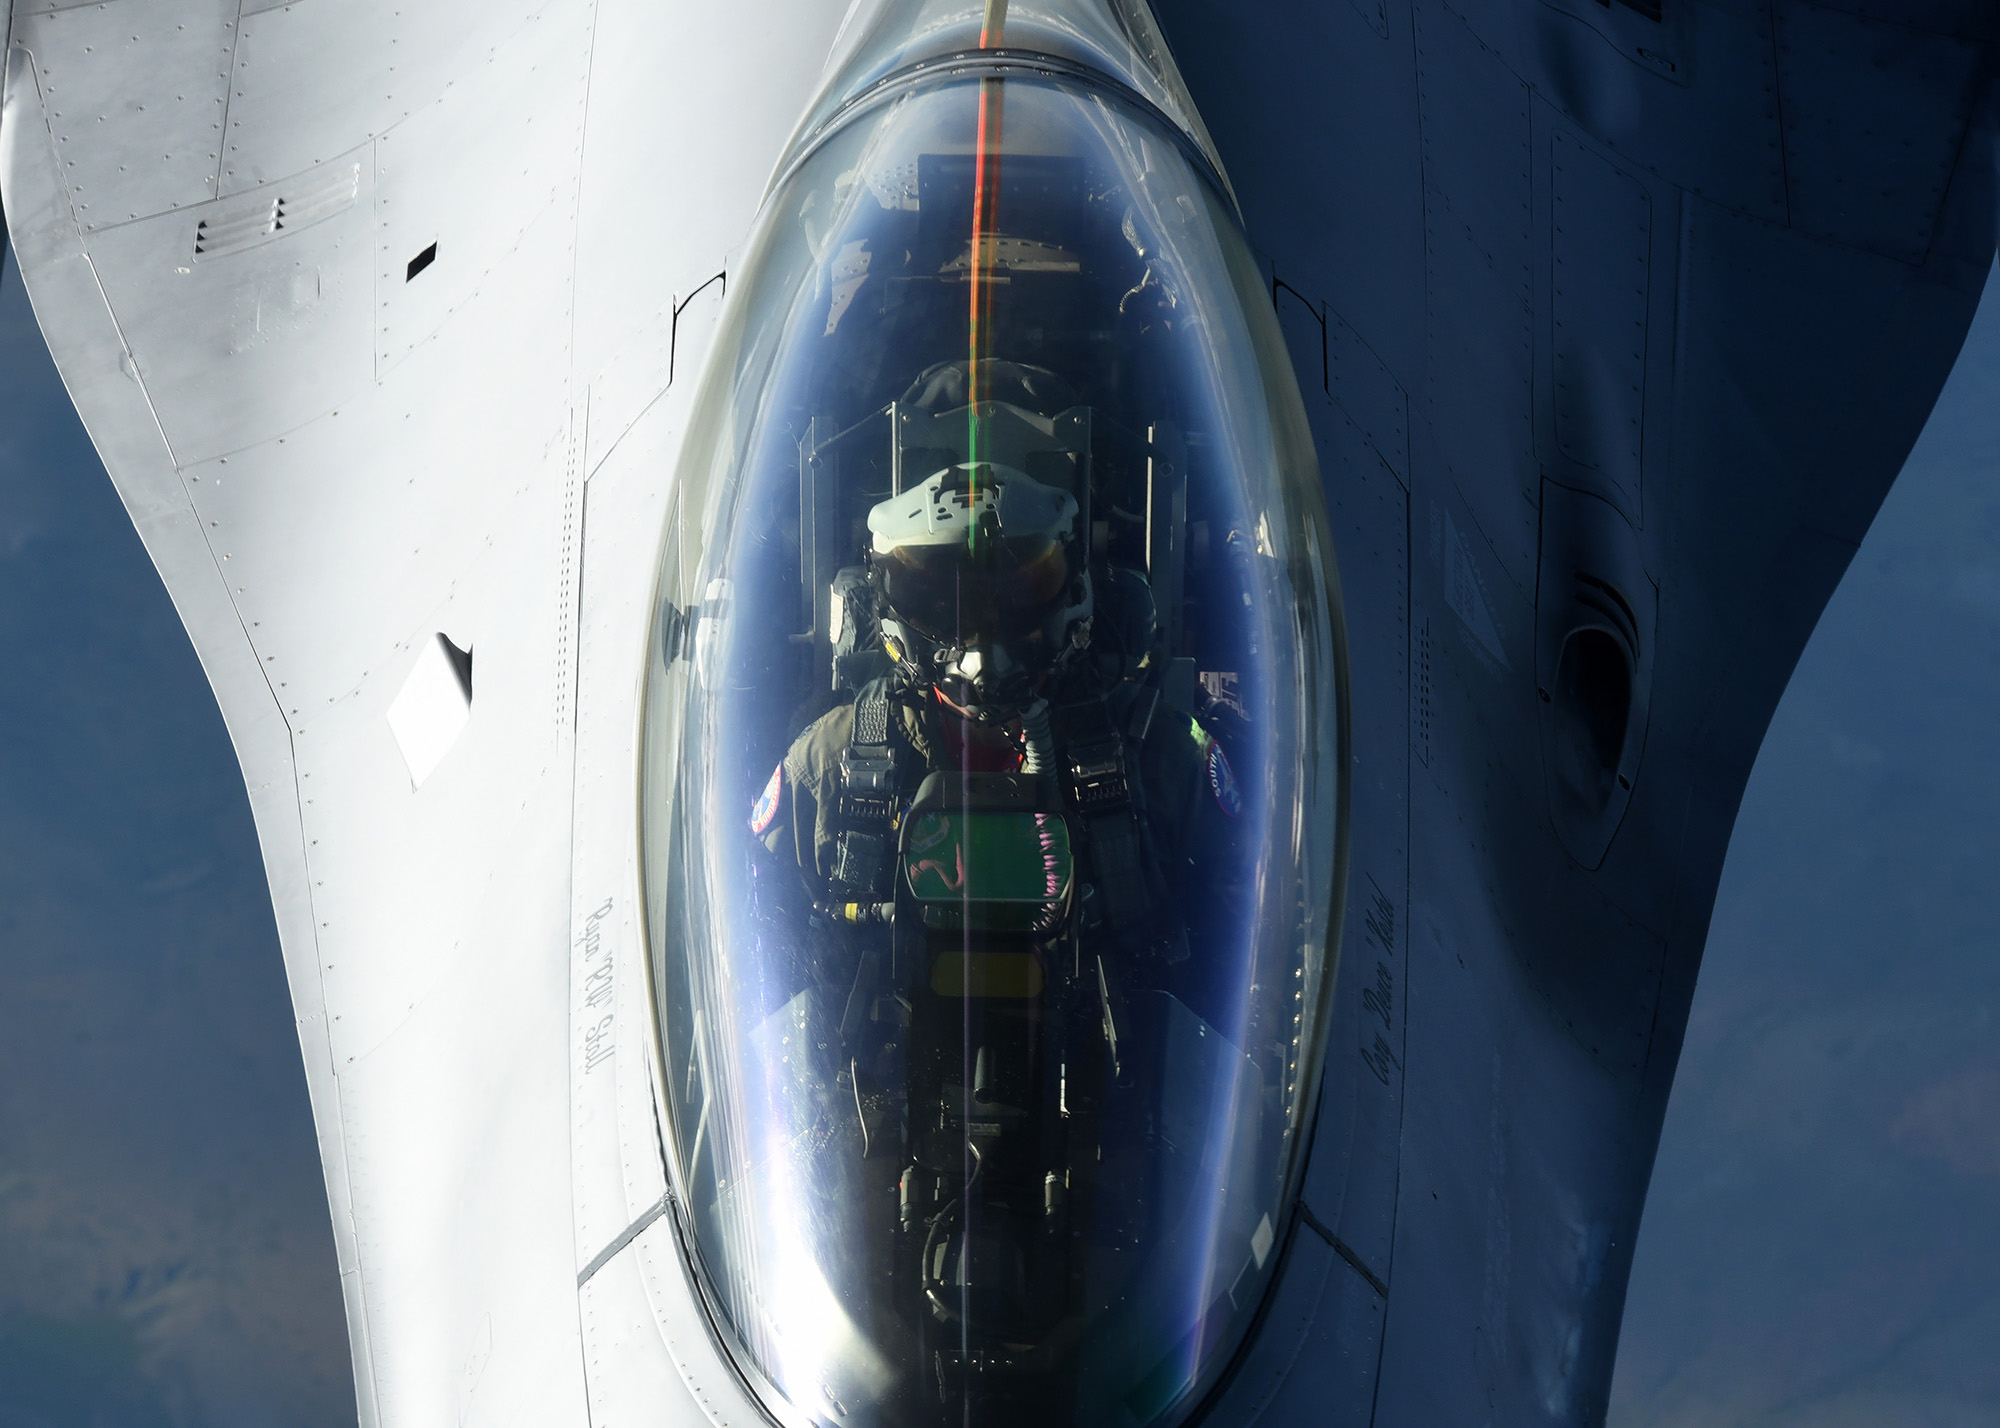 An Air Force F-16 Fighting Falcon receives fuel from a KC-10 Extender on July 3, 2020. The F-16, and other military aircraft, flew over Mount Rushmore in South Dakota during a